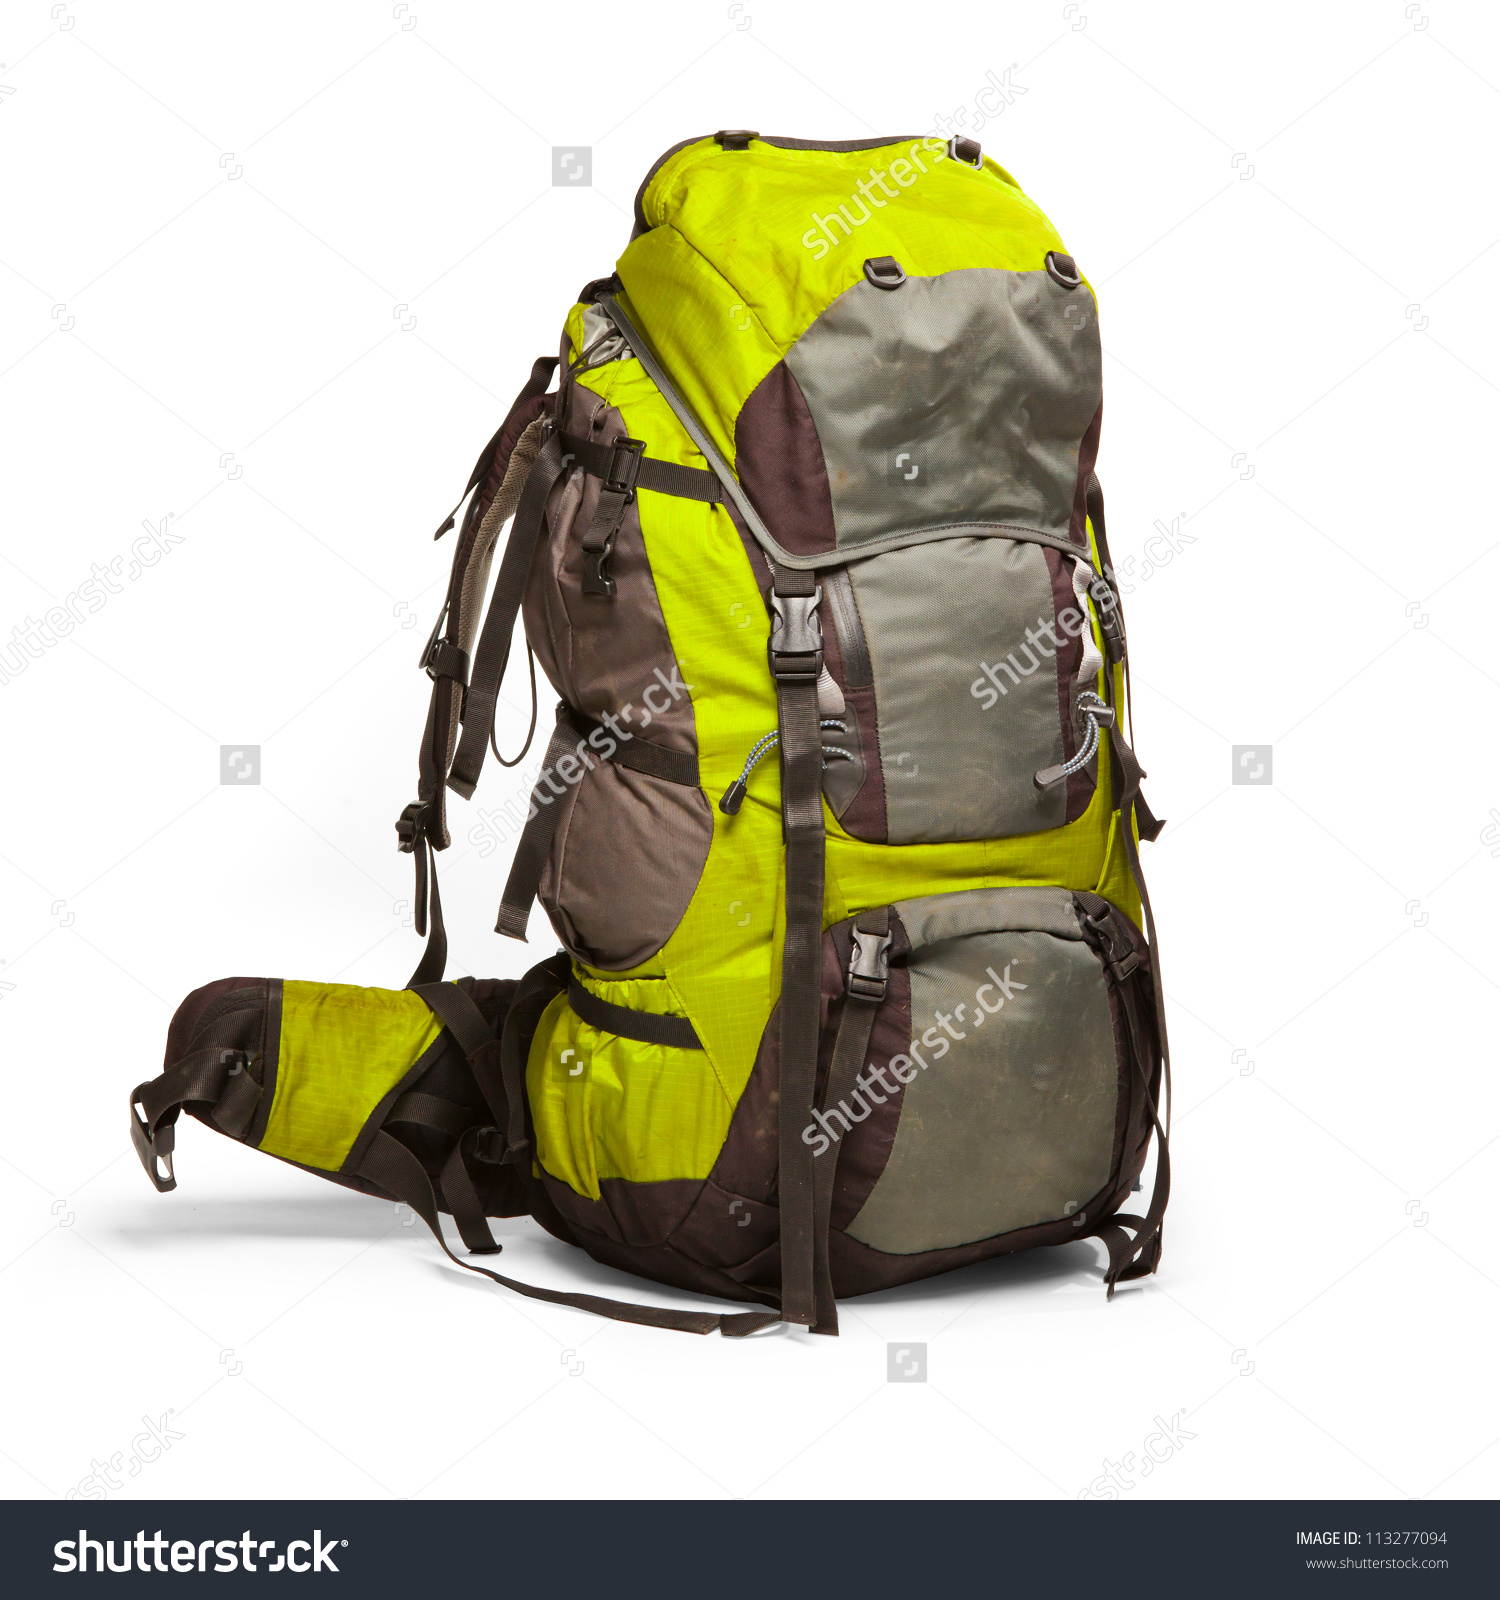 Used Hiking Backpacks yKSWrdAU